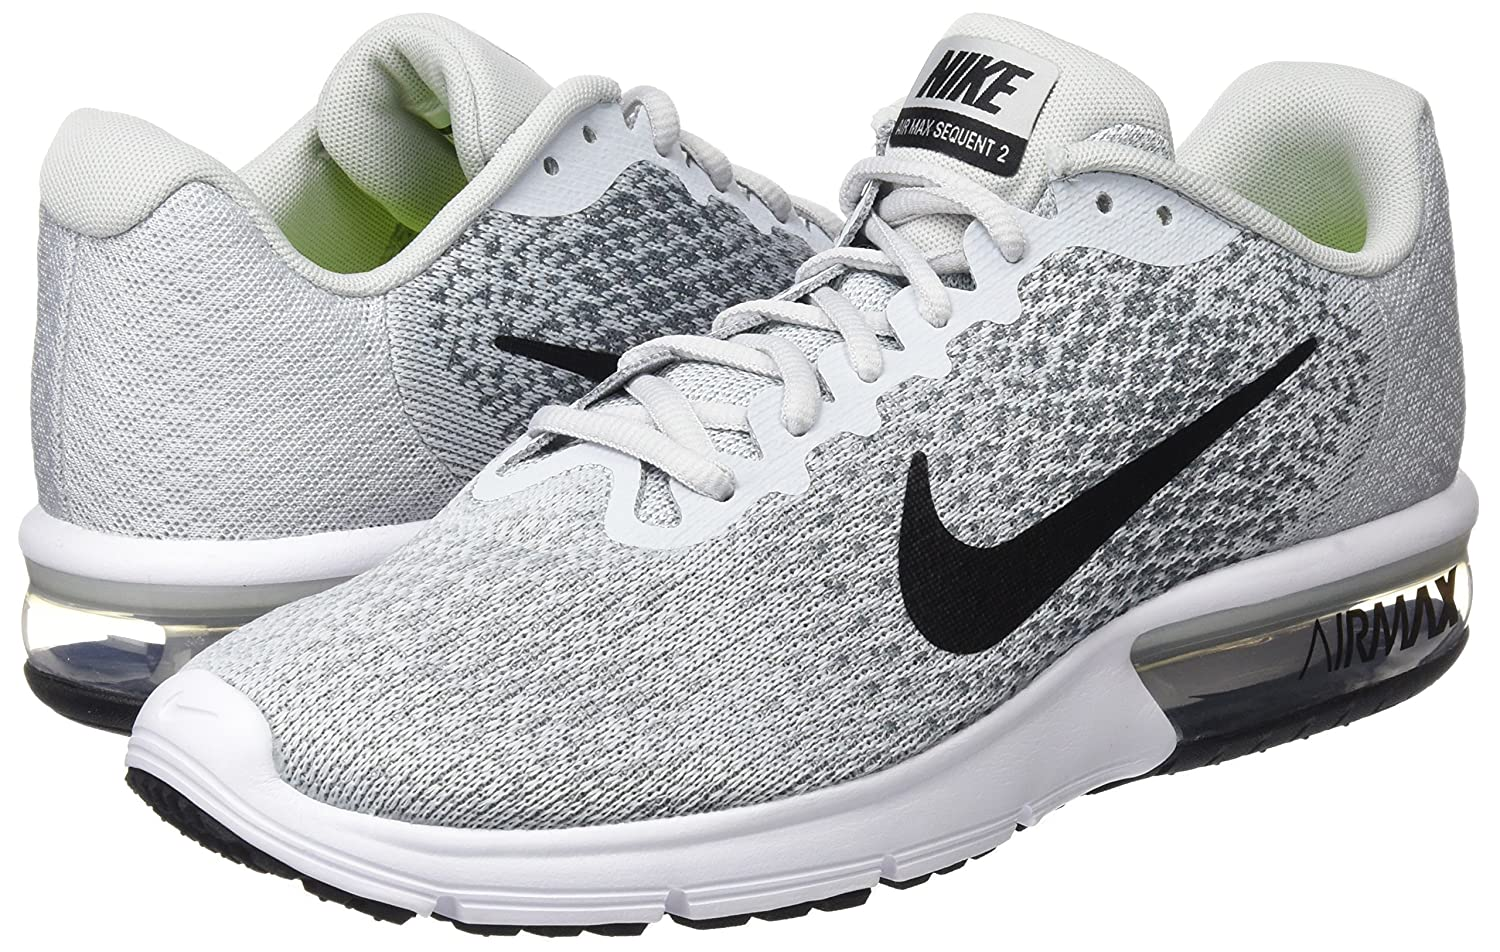 Nike Herren Air Max Sequent 2 Sneaker: : Schuhe